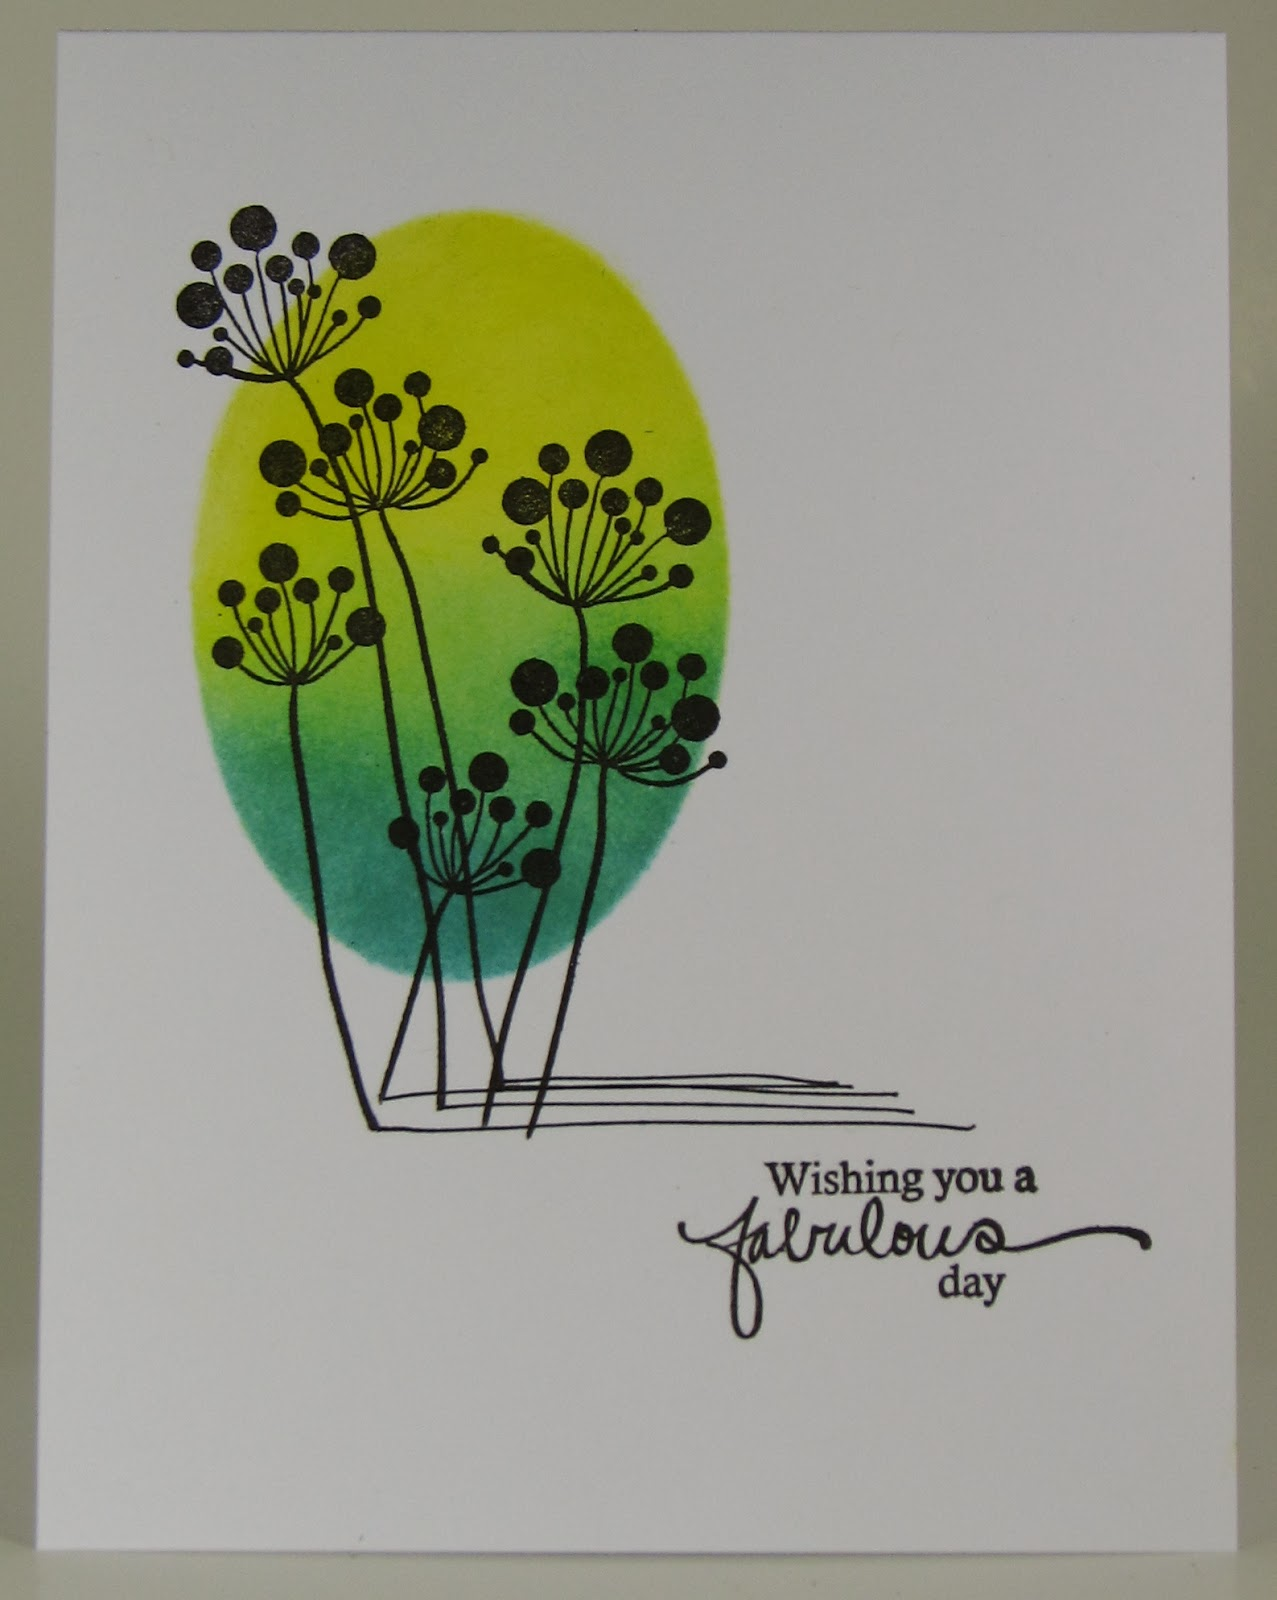 Featured on the One Layer Simplicity challenge with this card: